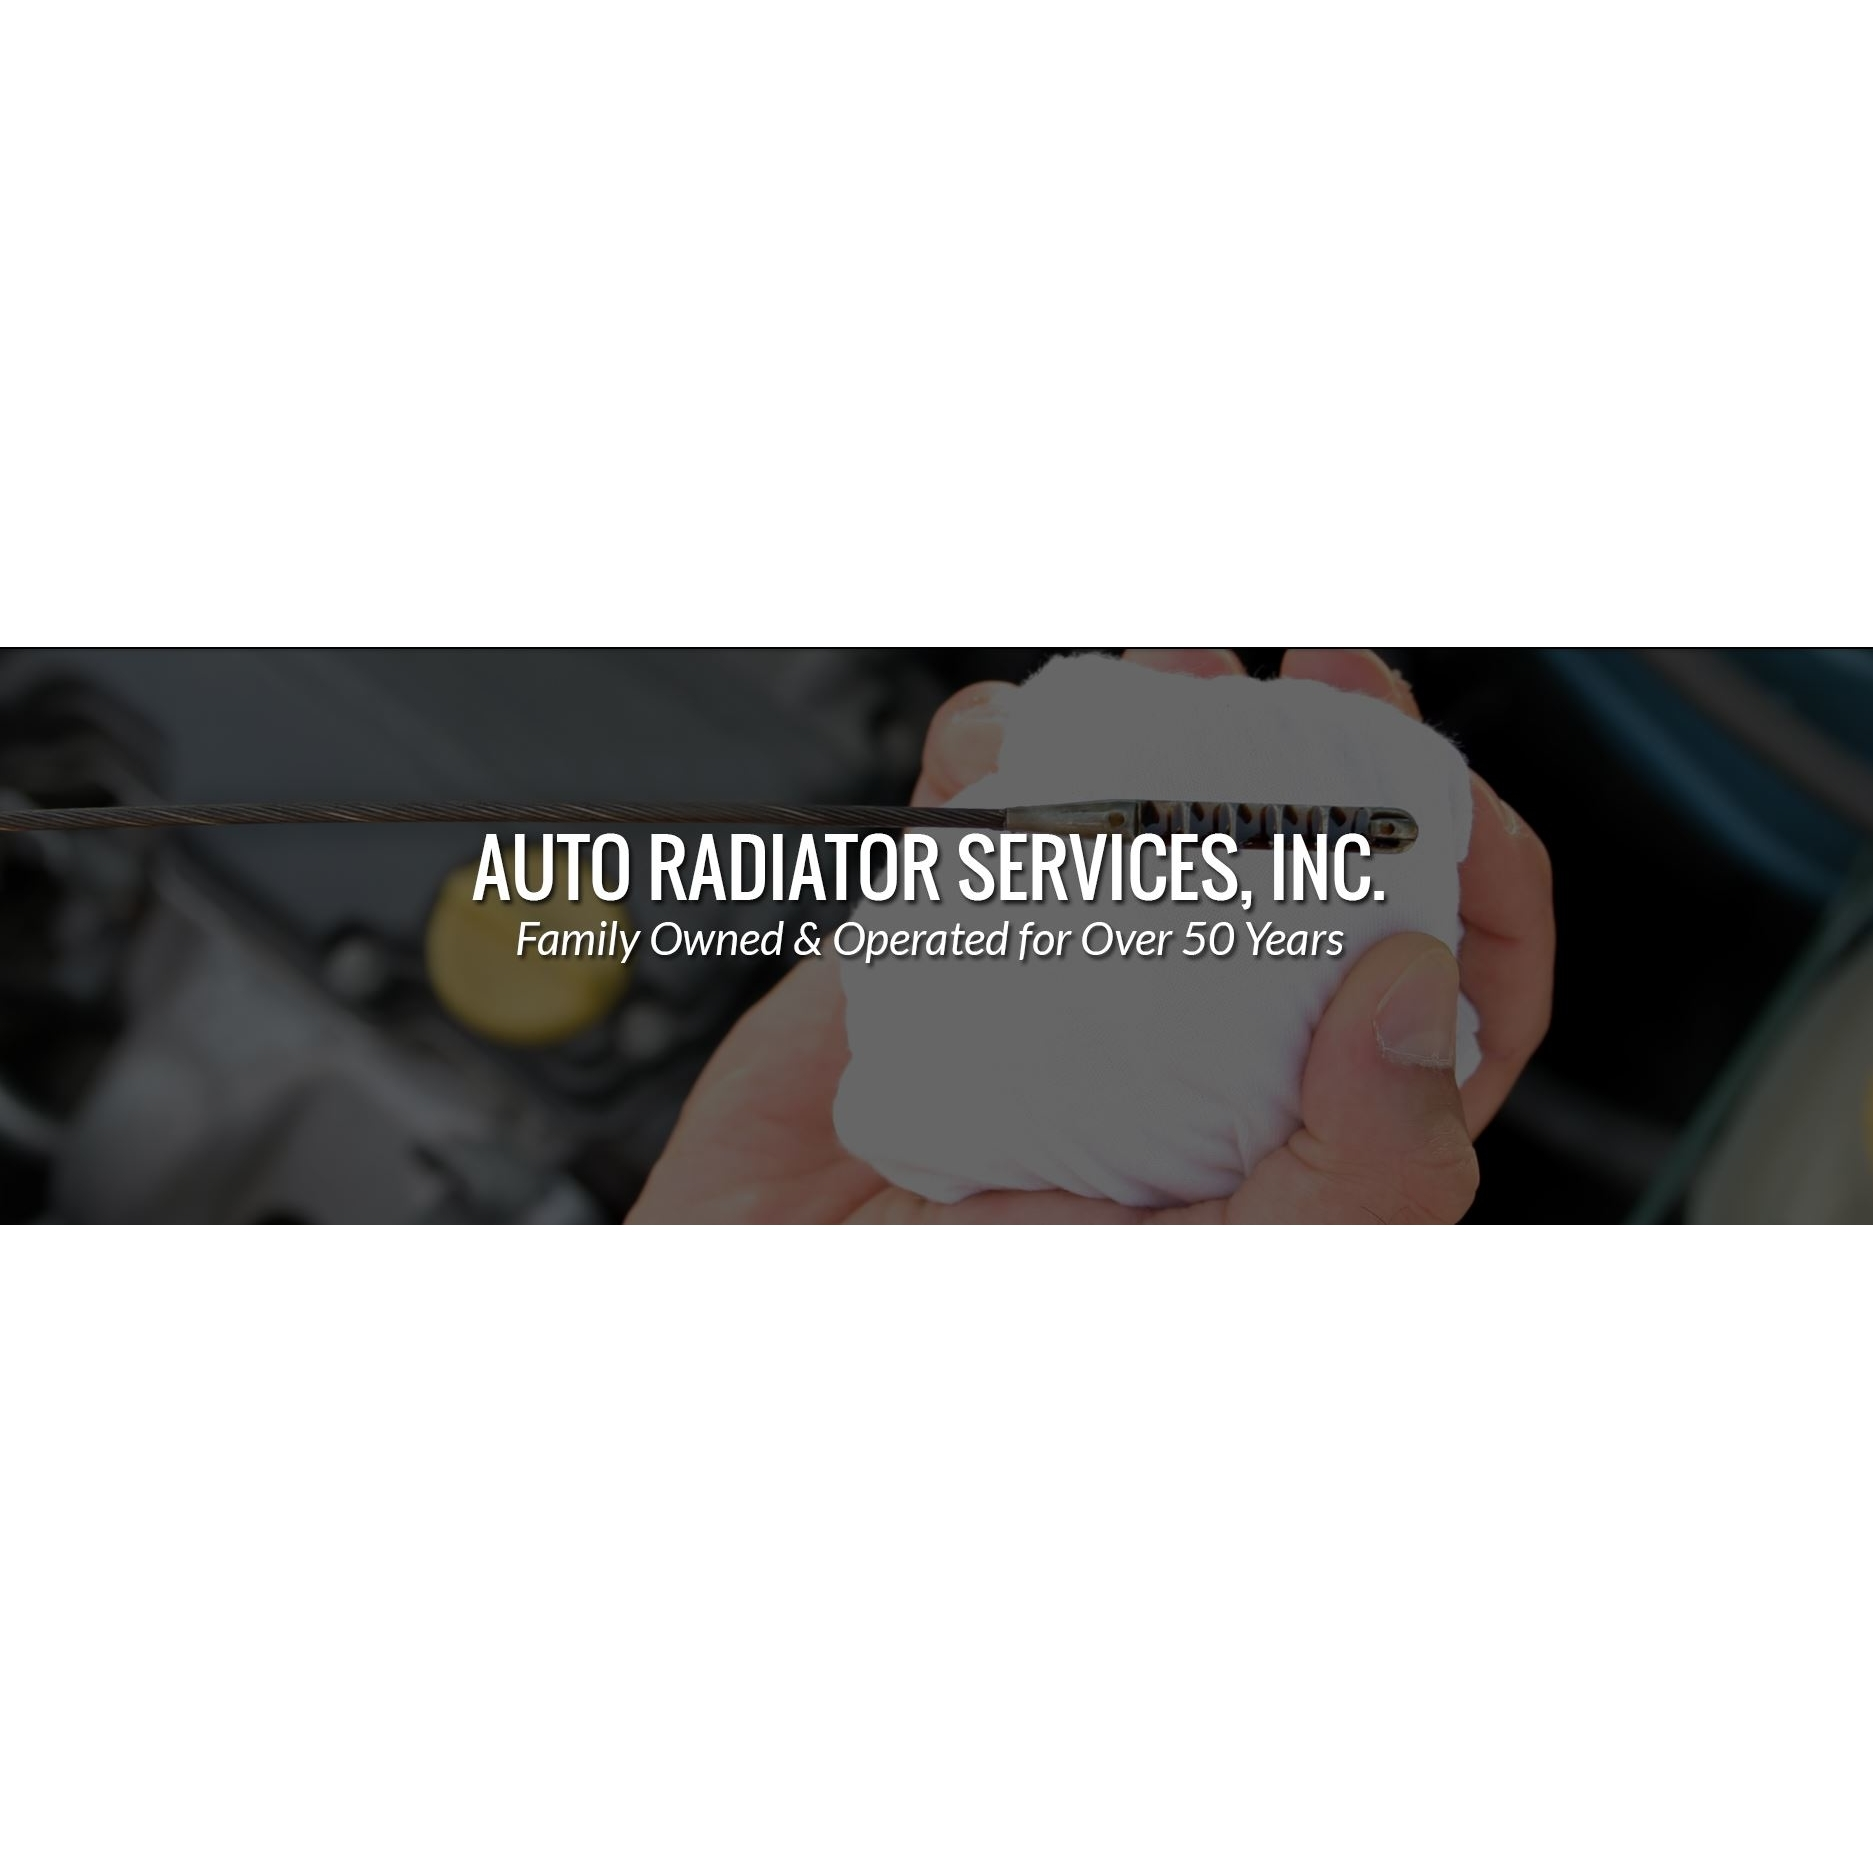 Auto Radiator Services Inc